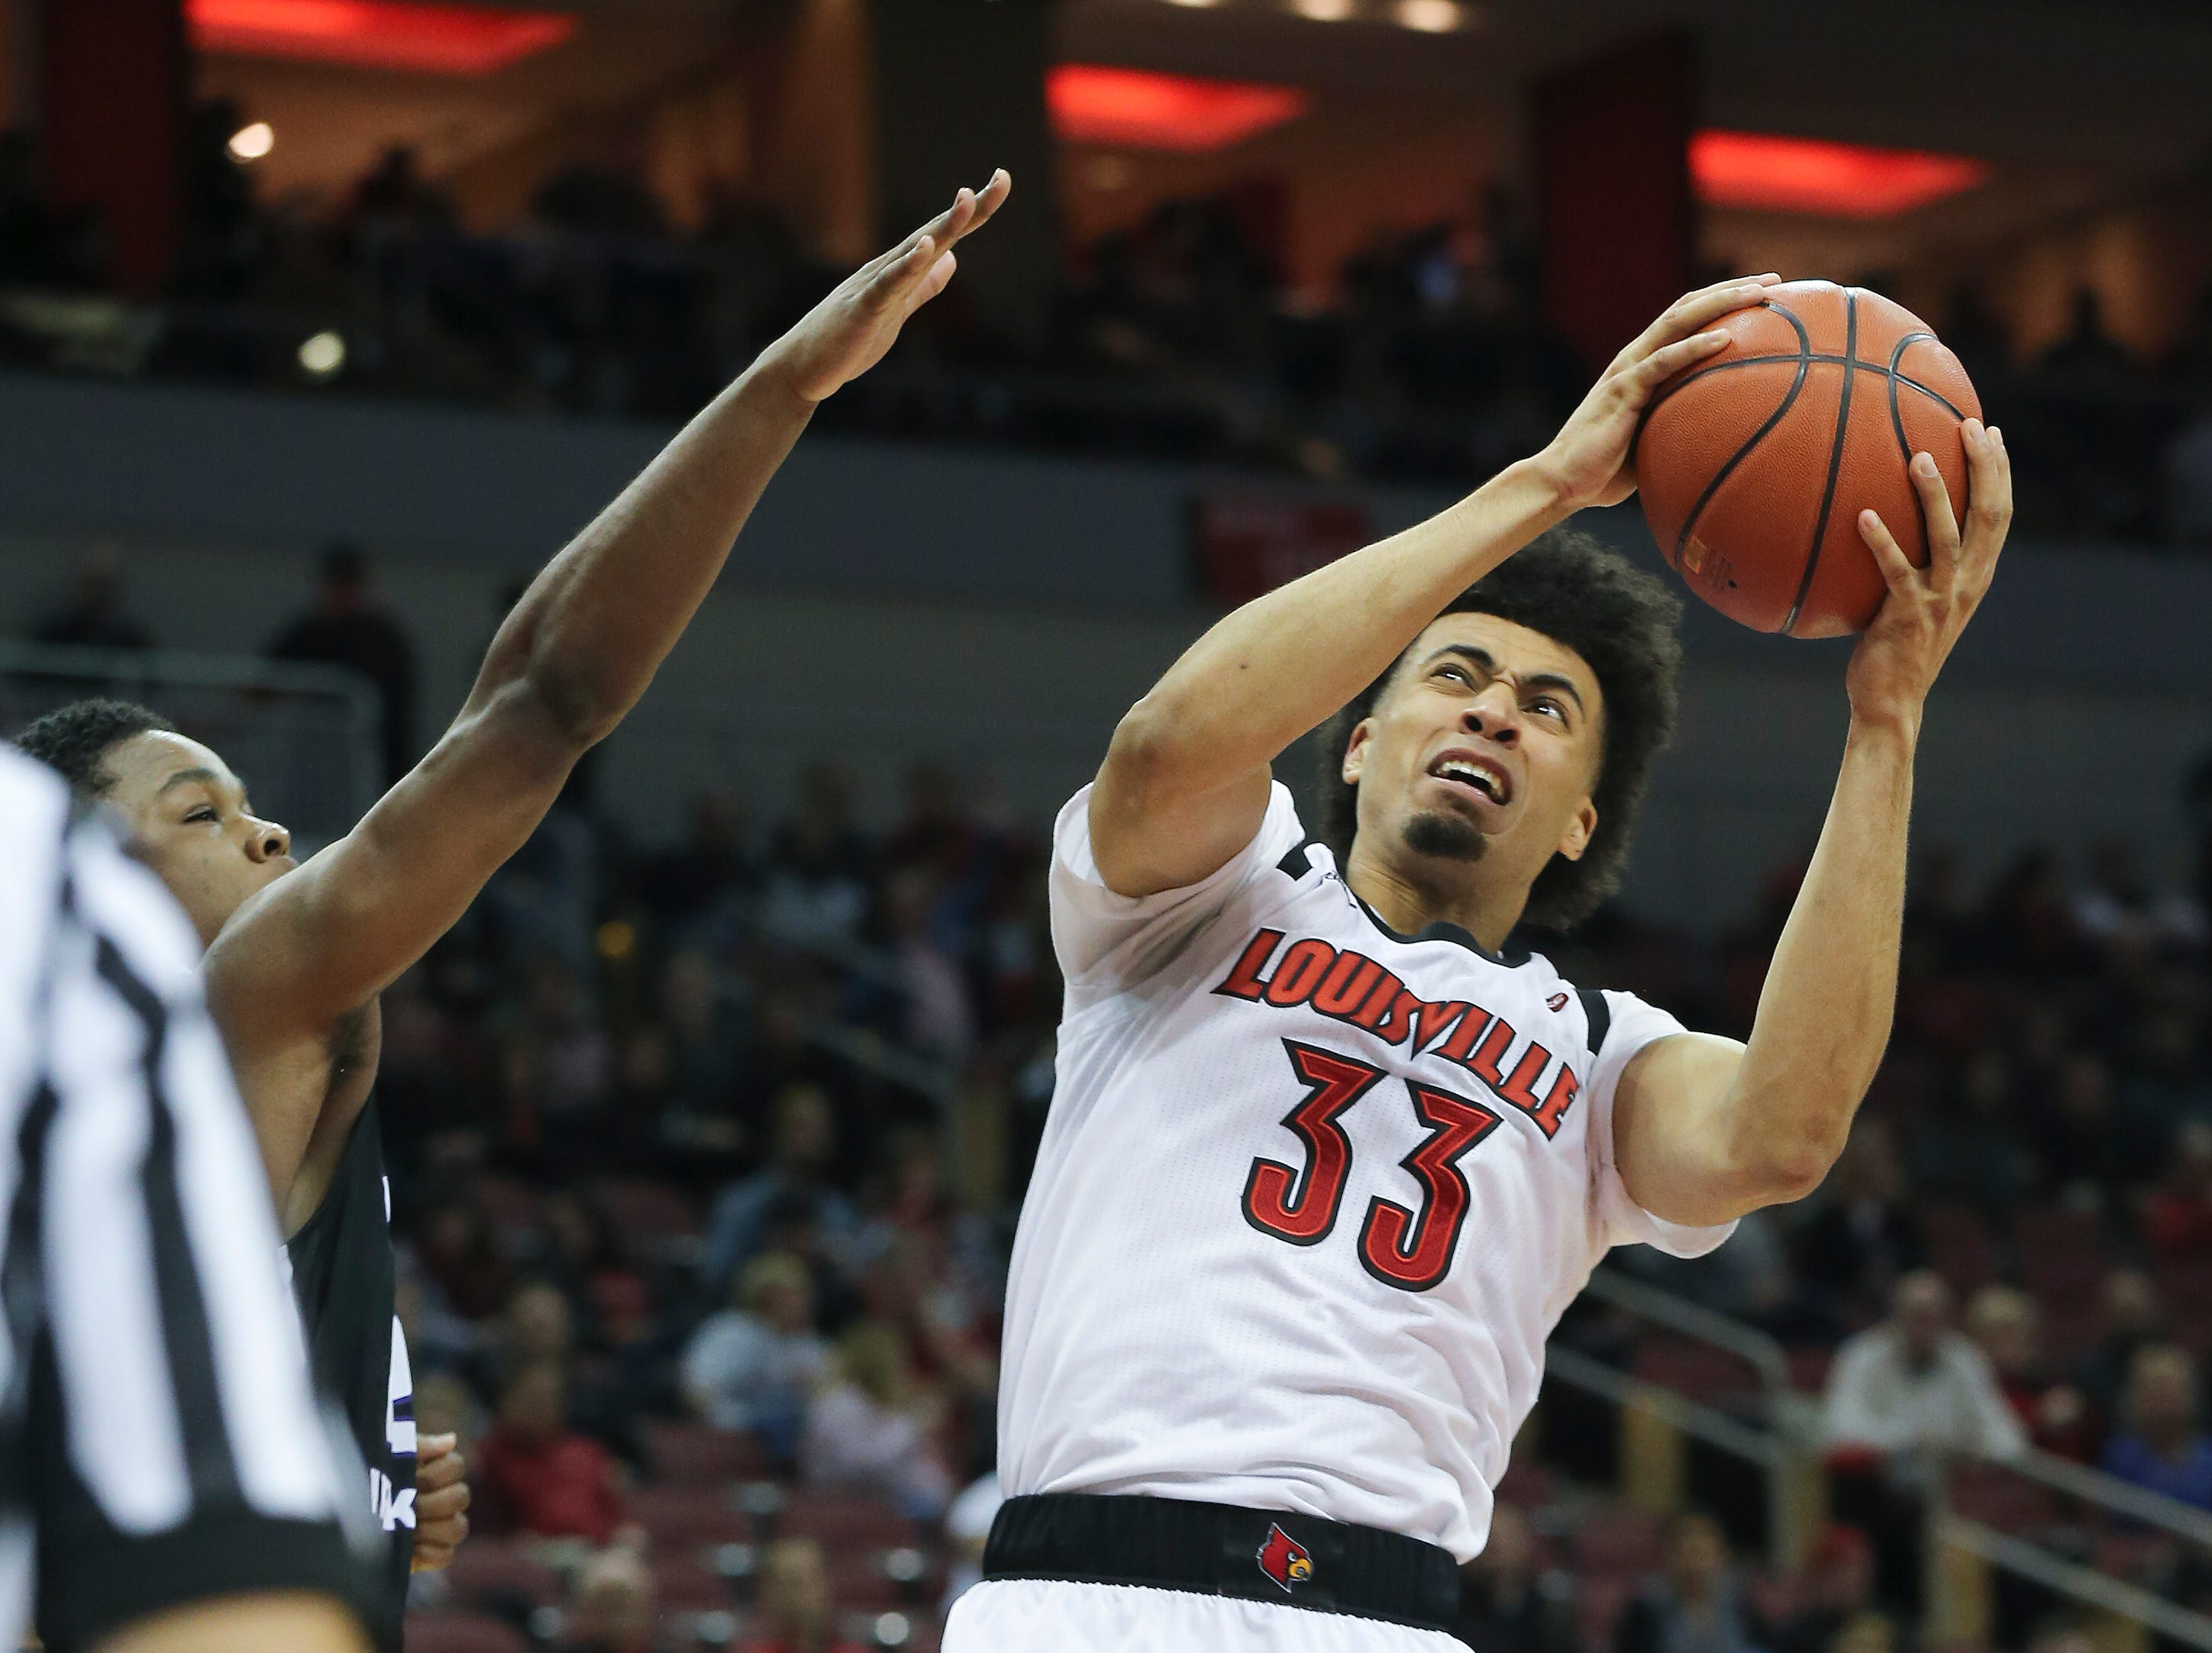 Louisville's Jordan Nwora (33) drives to the basket against Central Arkansas during their game at the Yum Center.  